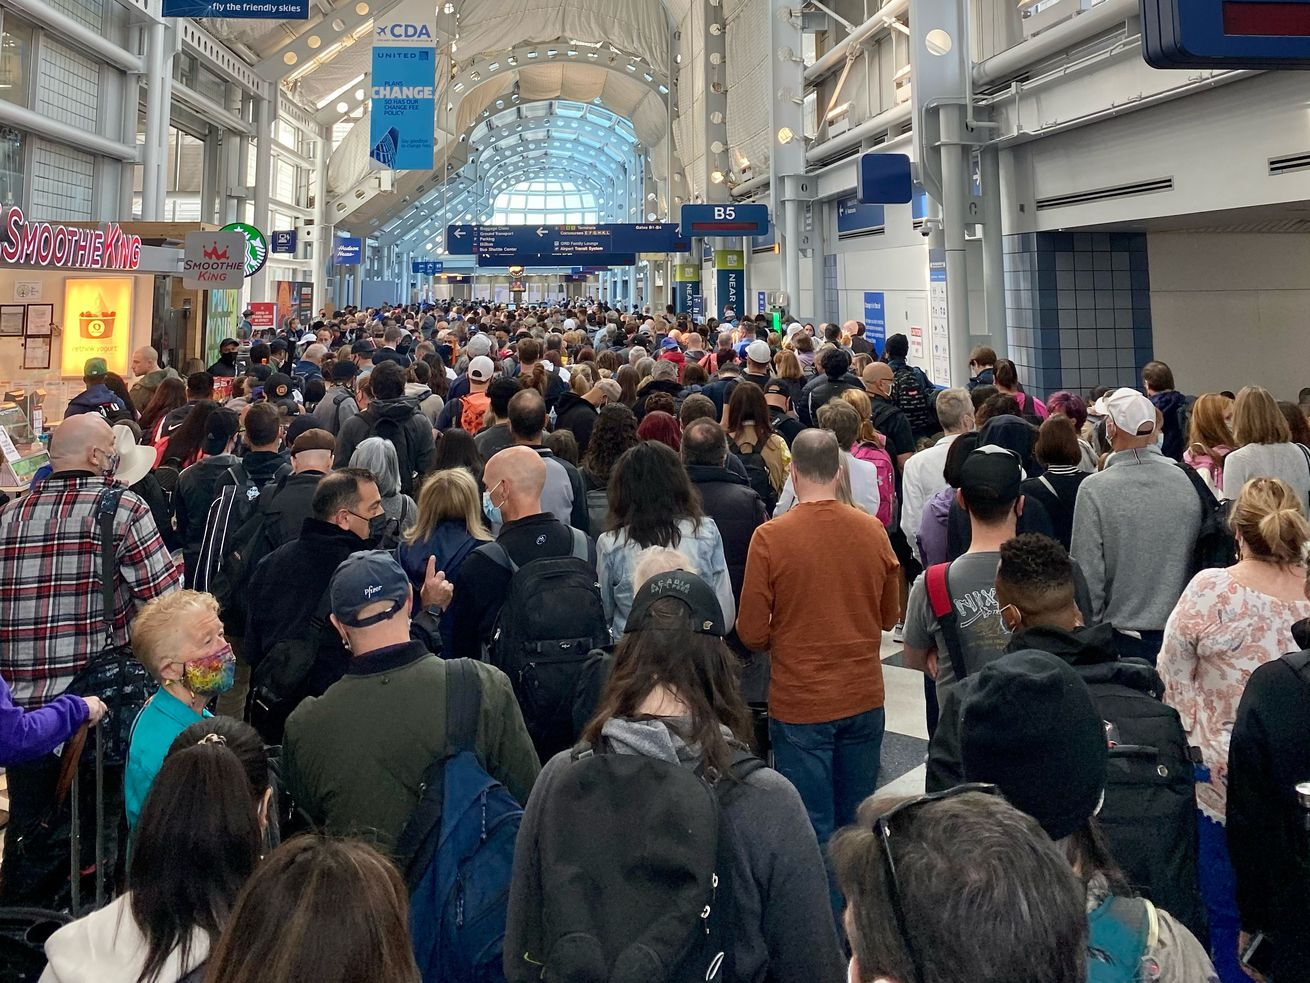 A fire that broke out Saturday morning inside a busy pedestrian tunnel at O'Hare Airport caused headaches for many travelers.